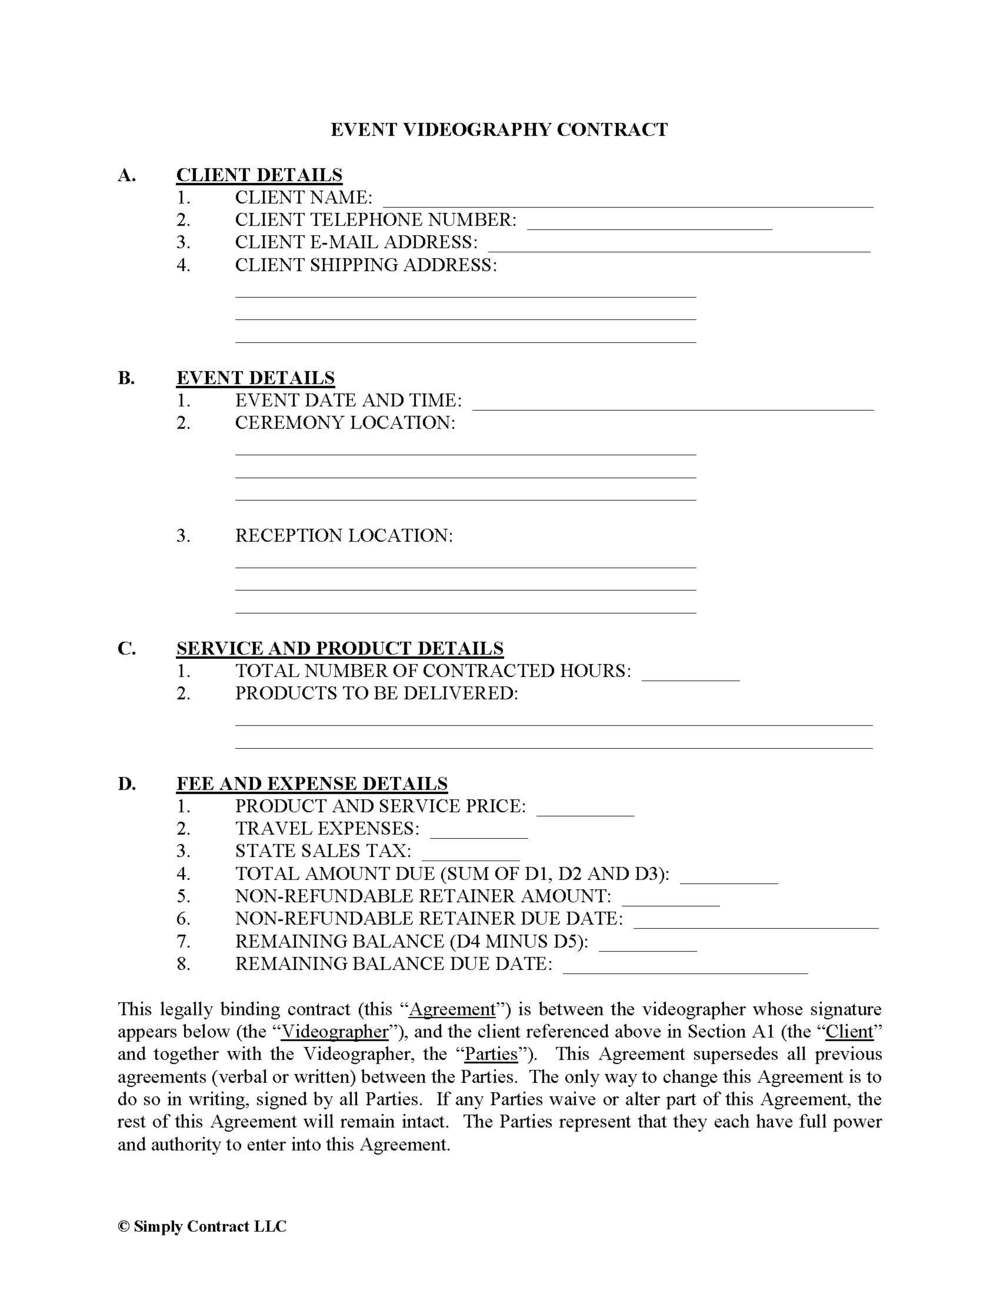 008 Unique Wedding Videographer Contract Template Picture  Videography PdfFull